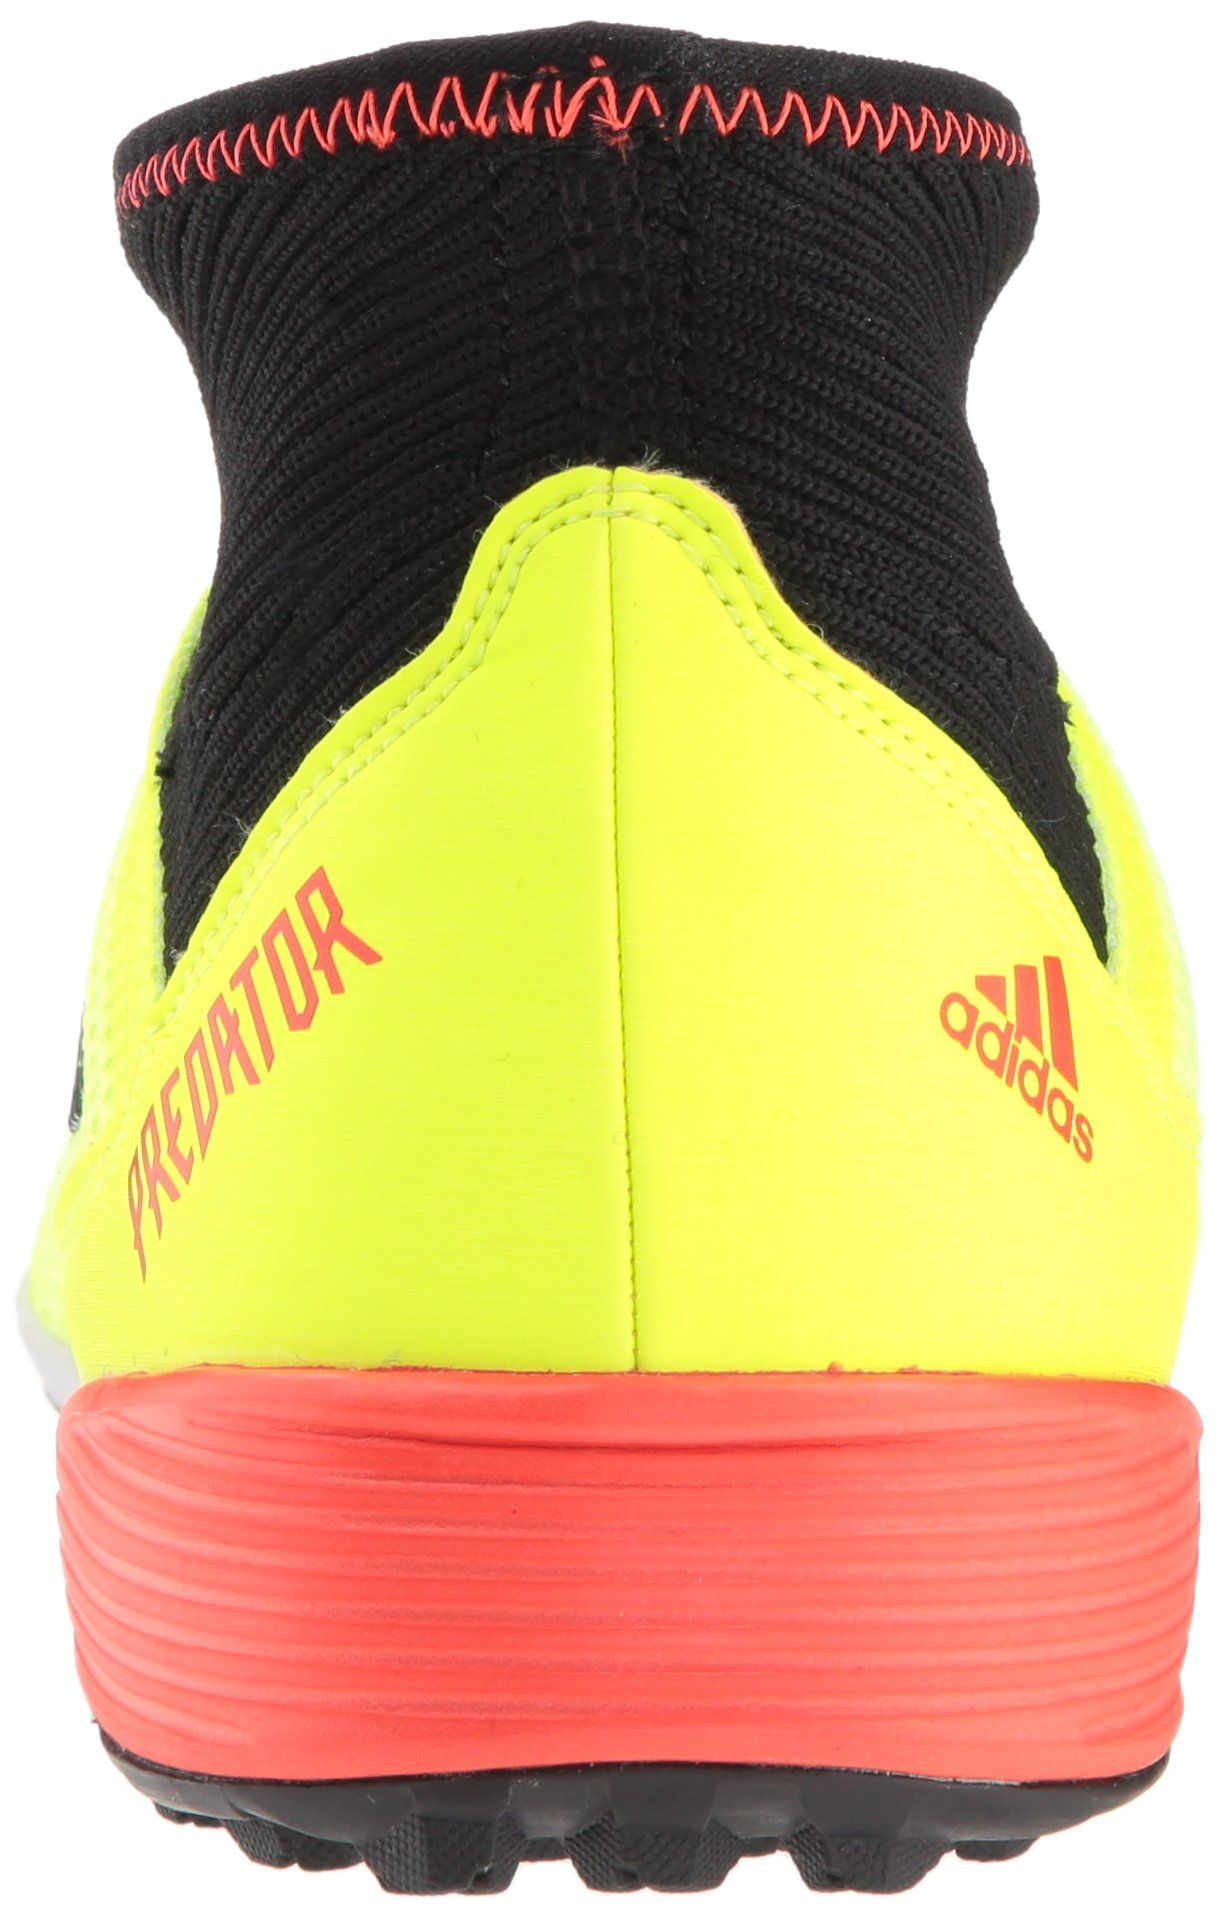 reputable site dd785 707cc adidas Mens Predator Tango 18.3 TF Running Shoe Yellow core Black Solar red  10.5 M US     Read more at the image link-affiliate link.